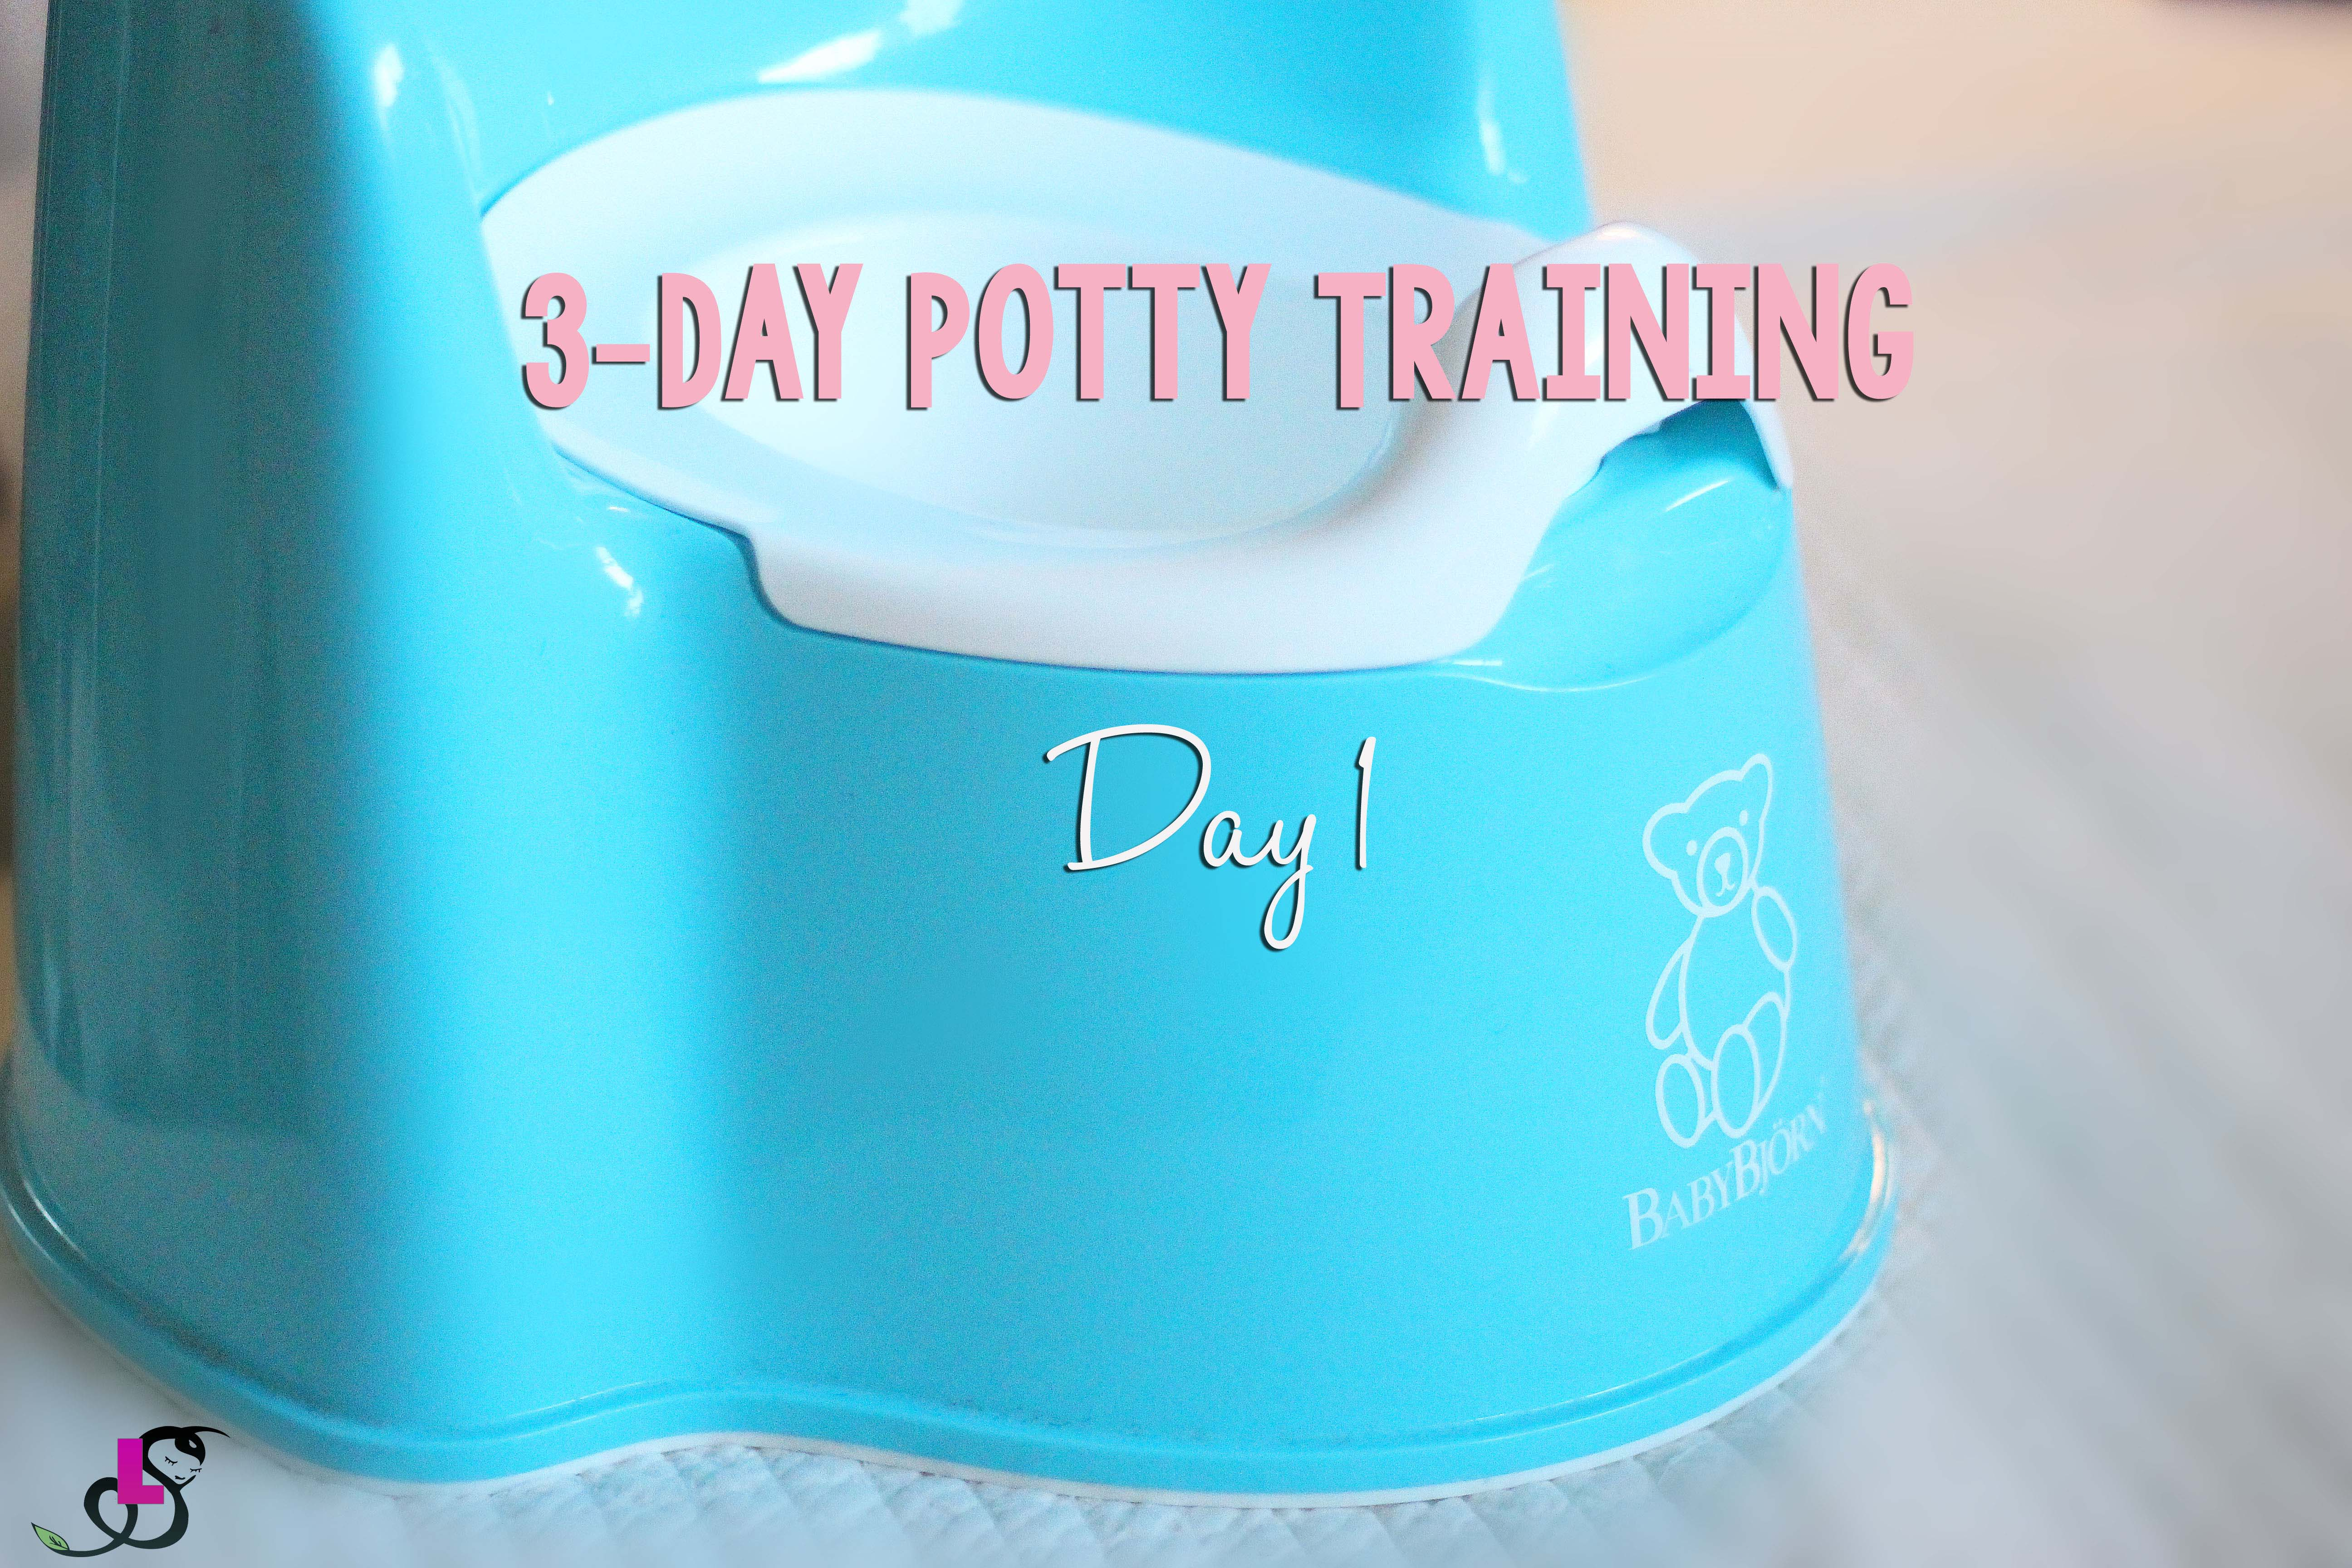 Blog Post 12.28.15 1_Day 1 of 3 Day Potty